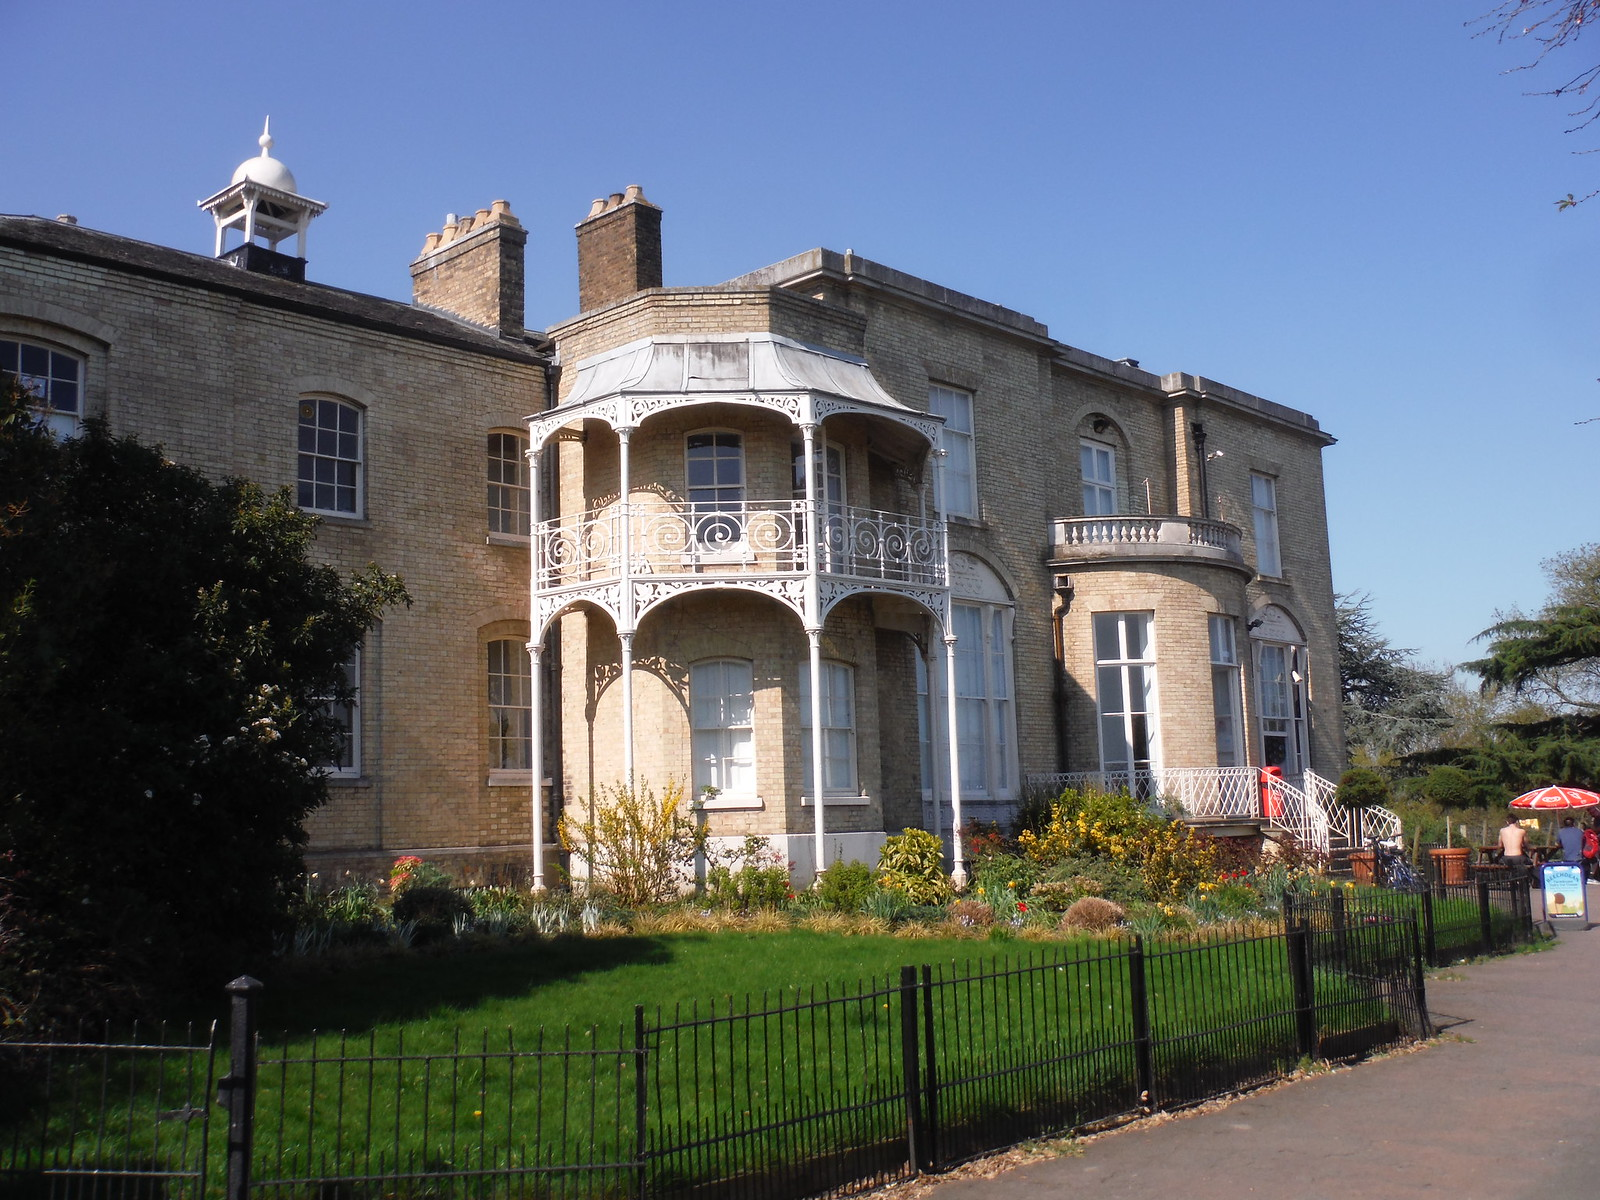 Brockwell Hall Cafe SWC Short Walk 39 - Brockwell Park (Herne Hill Circular or to Brixton)